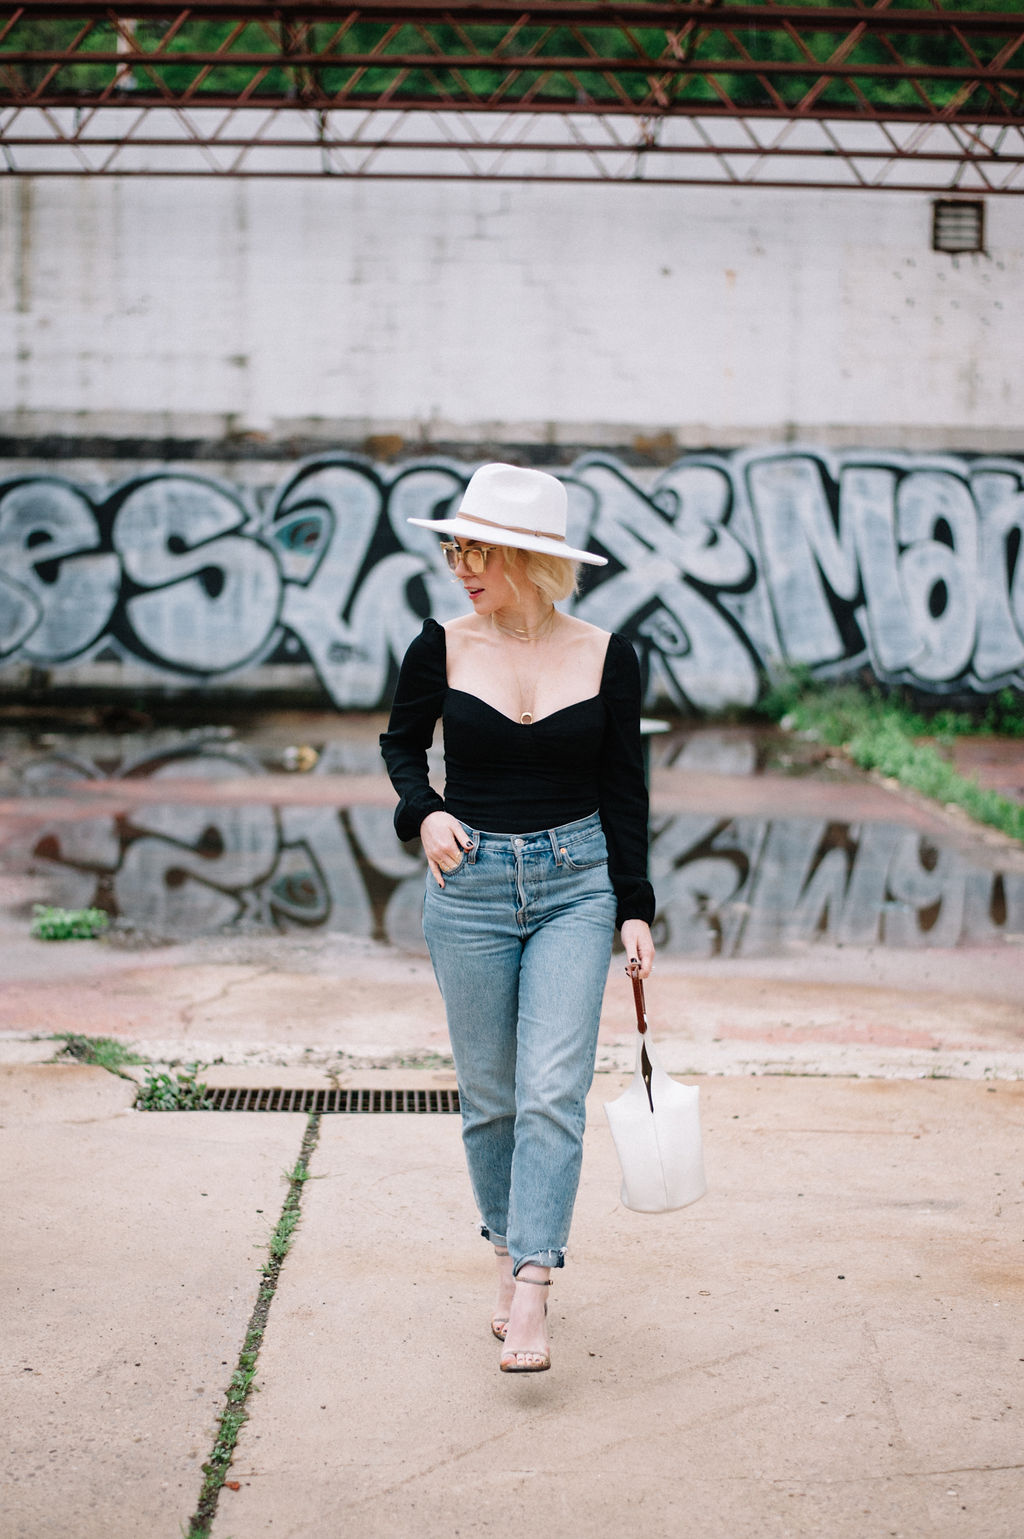 LoveNothingMore-Pittsburgh-Reformation-Levis-Anthropolgie-StuartWeitzman-CultGaia